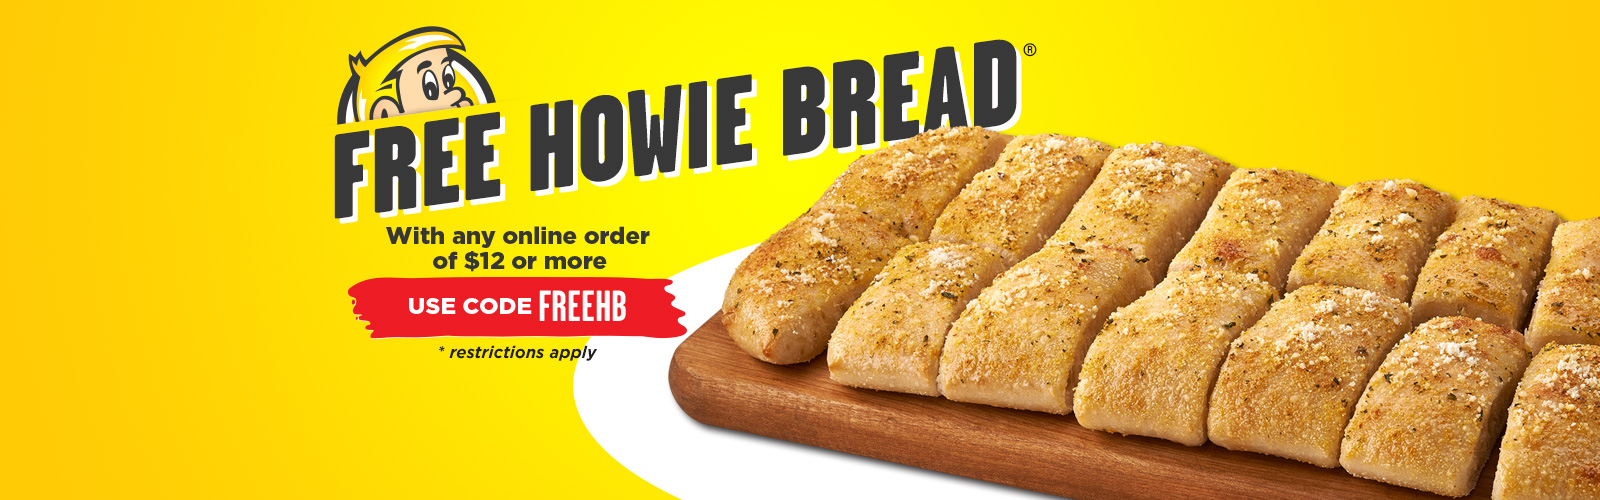 Free Howie Bread with any online order of $12 or more!